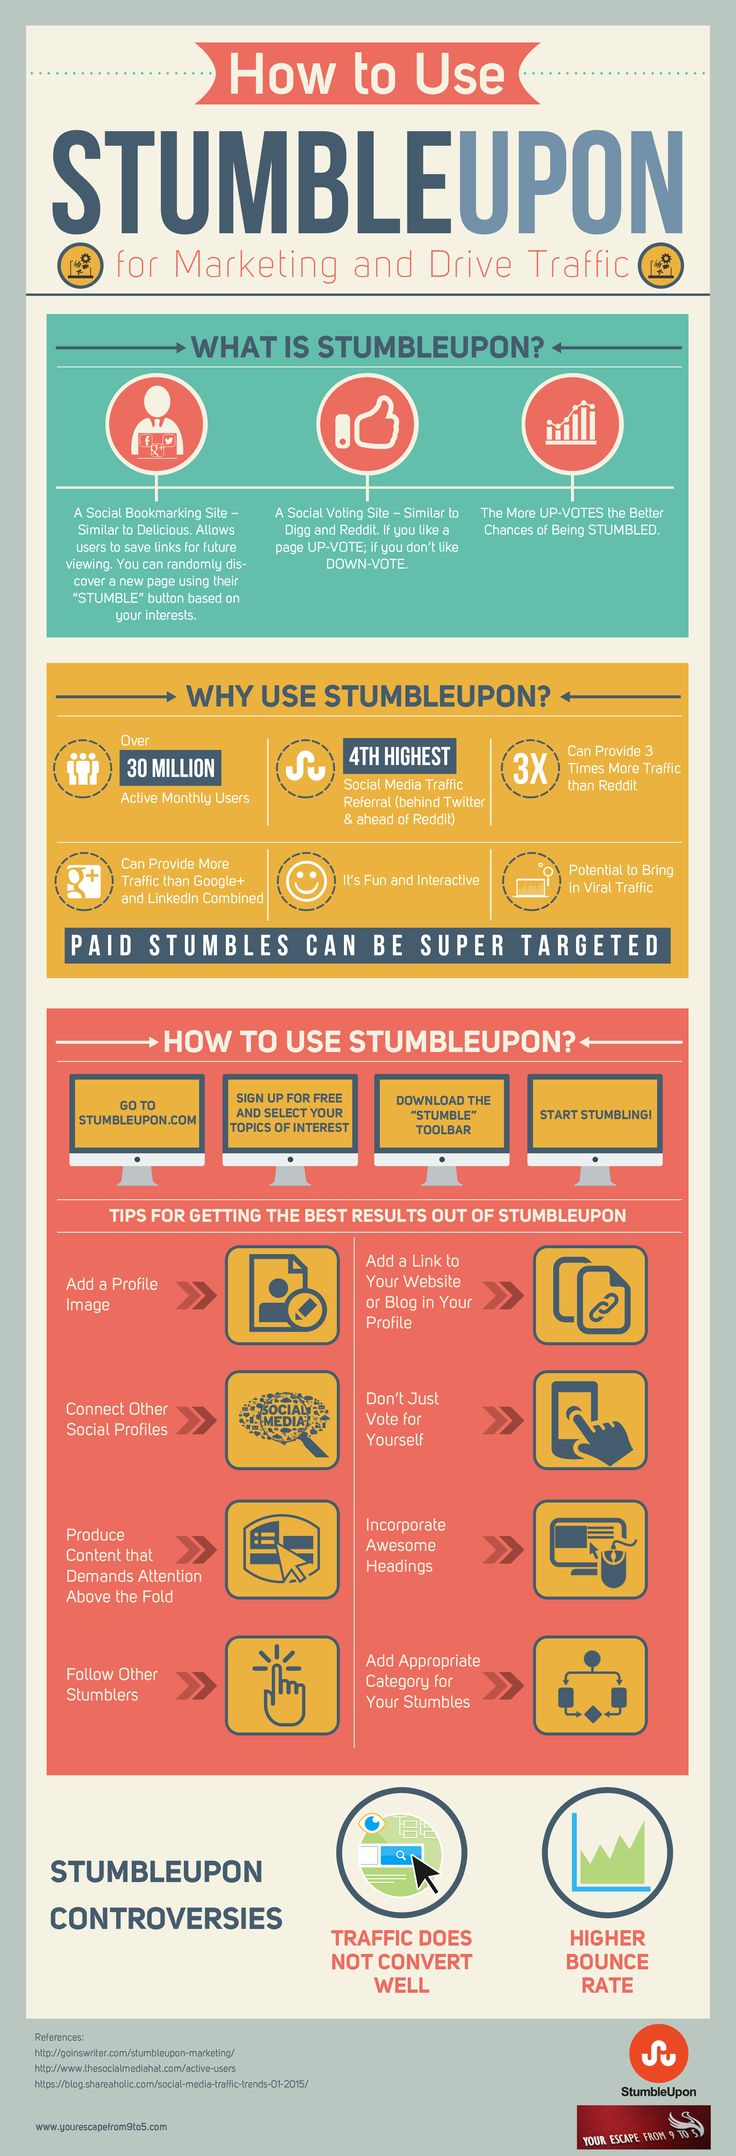 How to Use StumbleUpon to Drive Traffic and Marketing #infographic